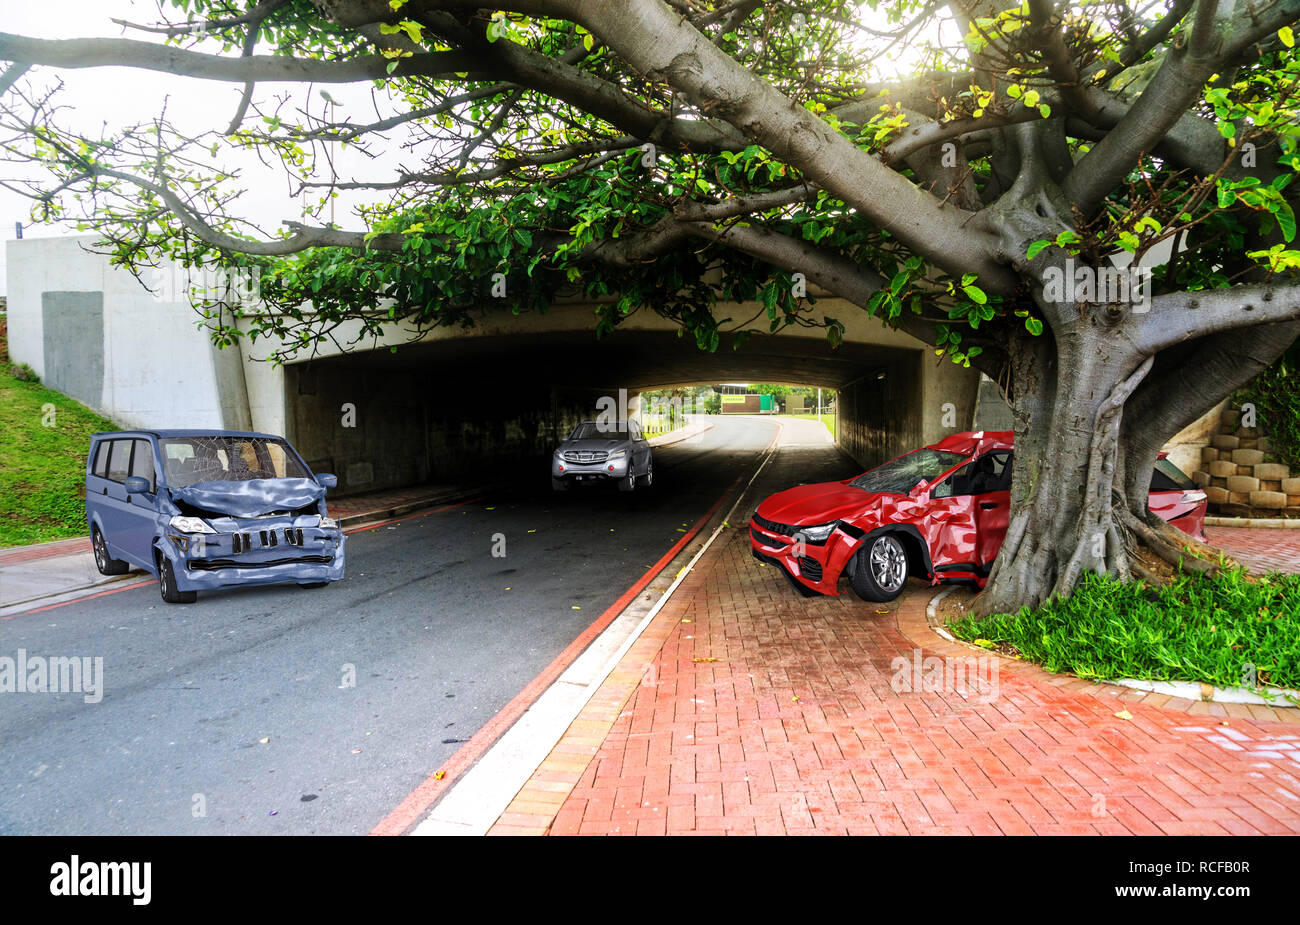 Two cars accident. Crashed cars on the road on location. A red sedan against a tree after collision with a gret van. - Stock Image